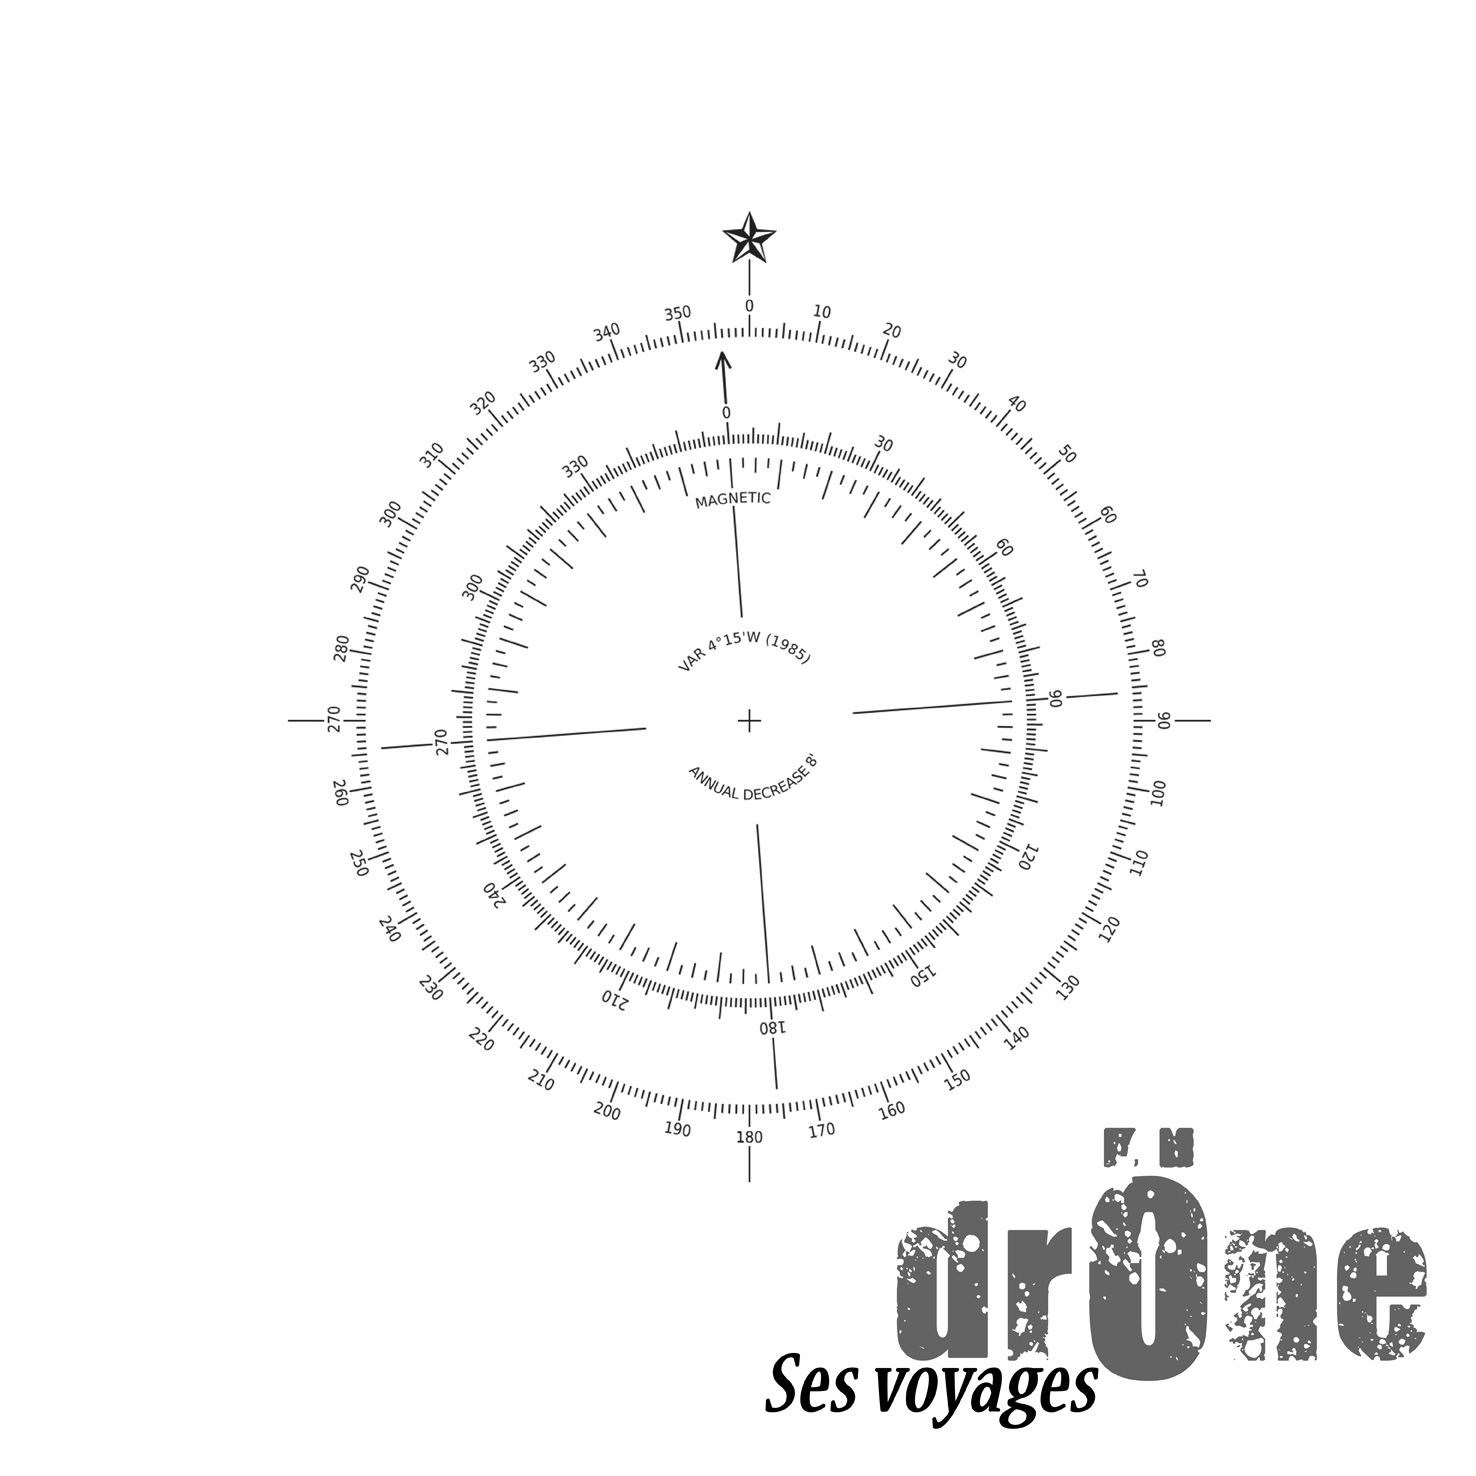 http://dronezic.free.fr/download/covers/drone_ses_voyages.jpg